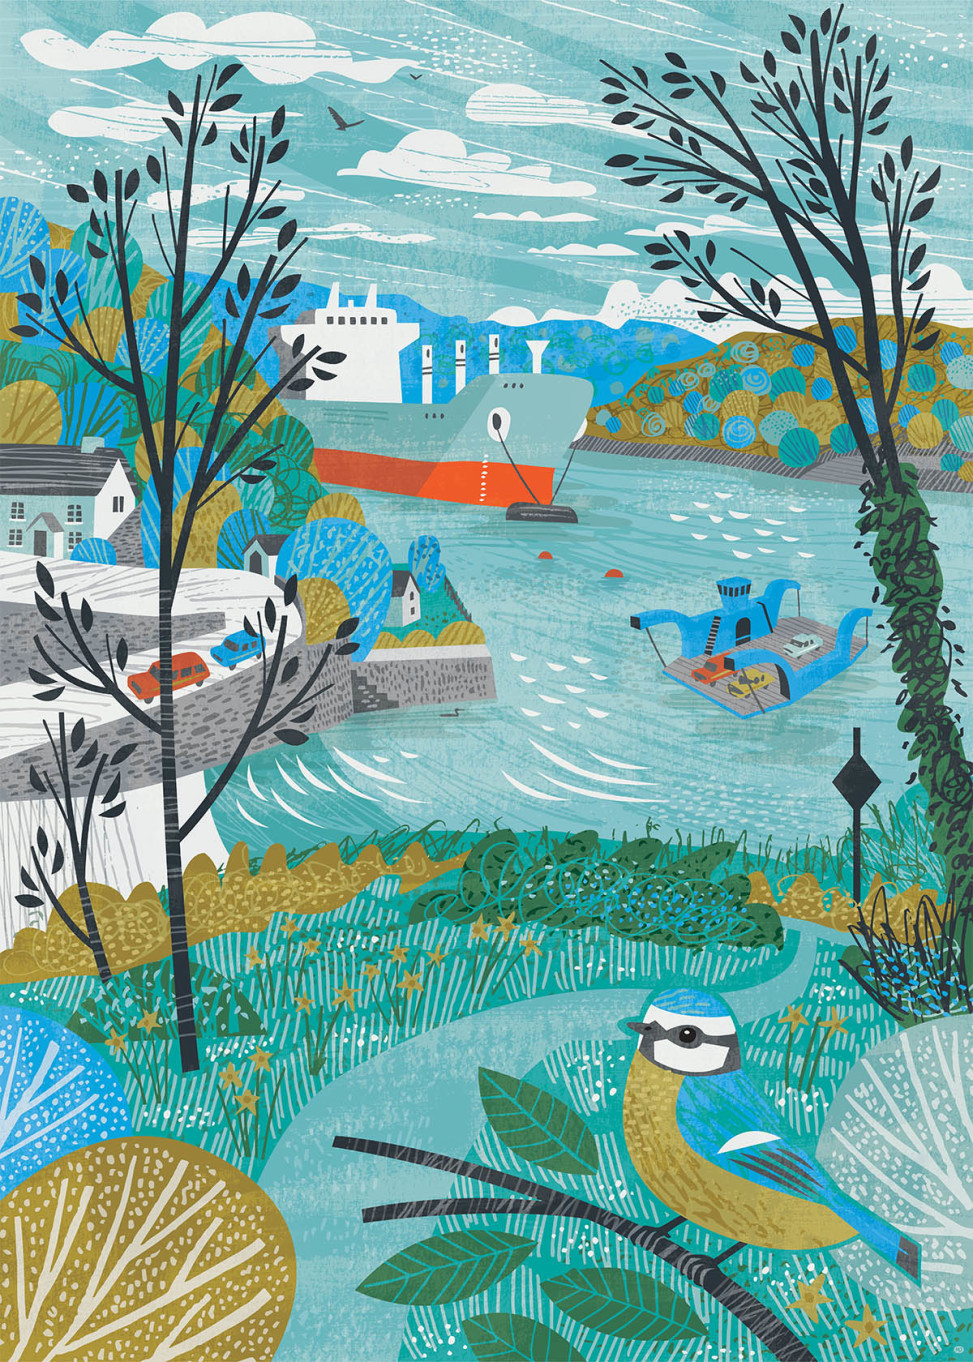 King Harry Ferry illustration with blue tit by Matt Johnson